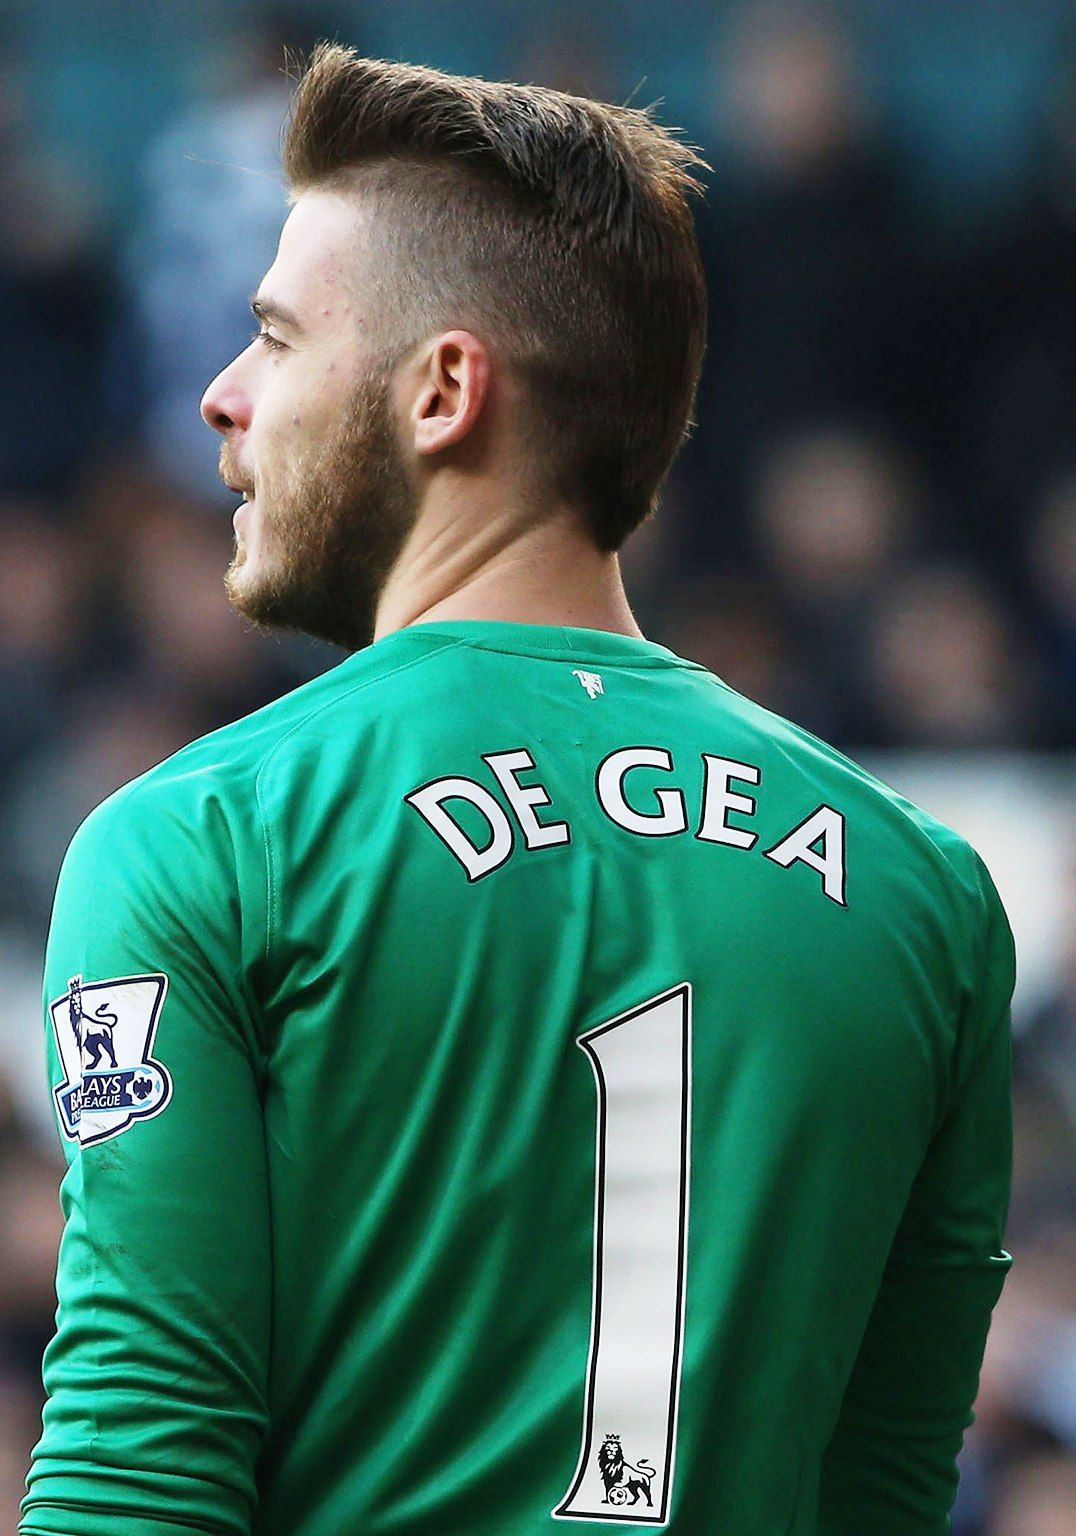 68af459be8b David De Gea Haircut 2019 Name Hairstyle | Hairstyles | Manchester ...